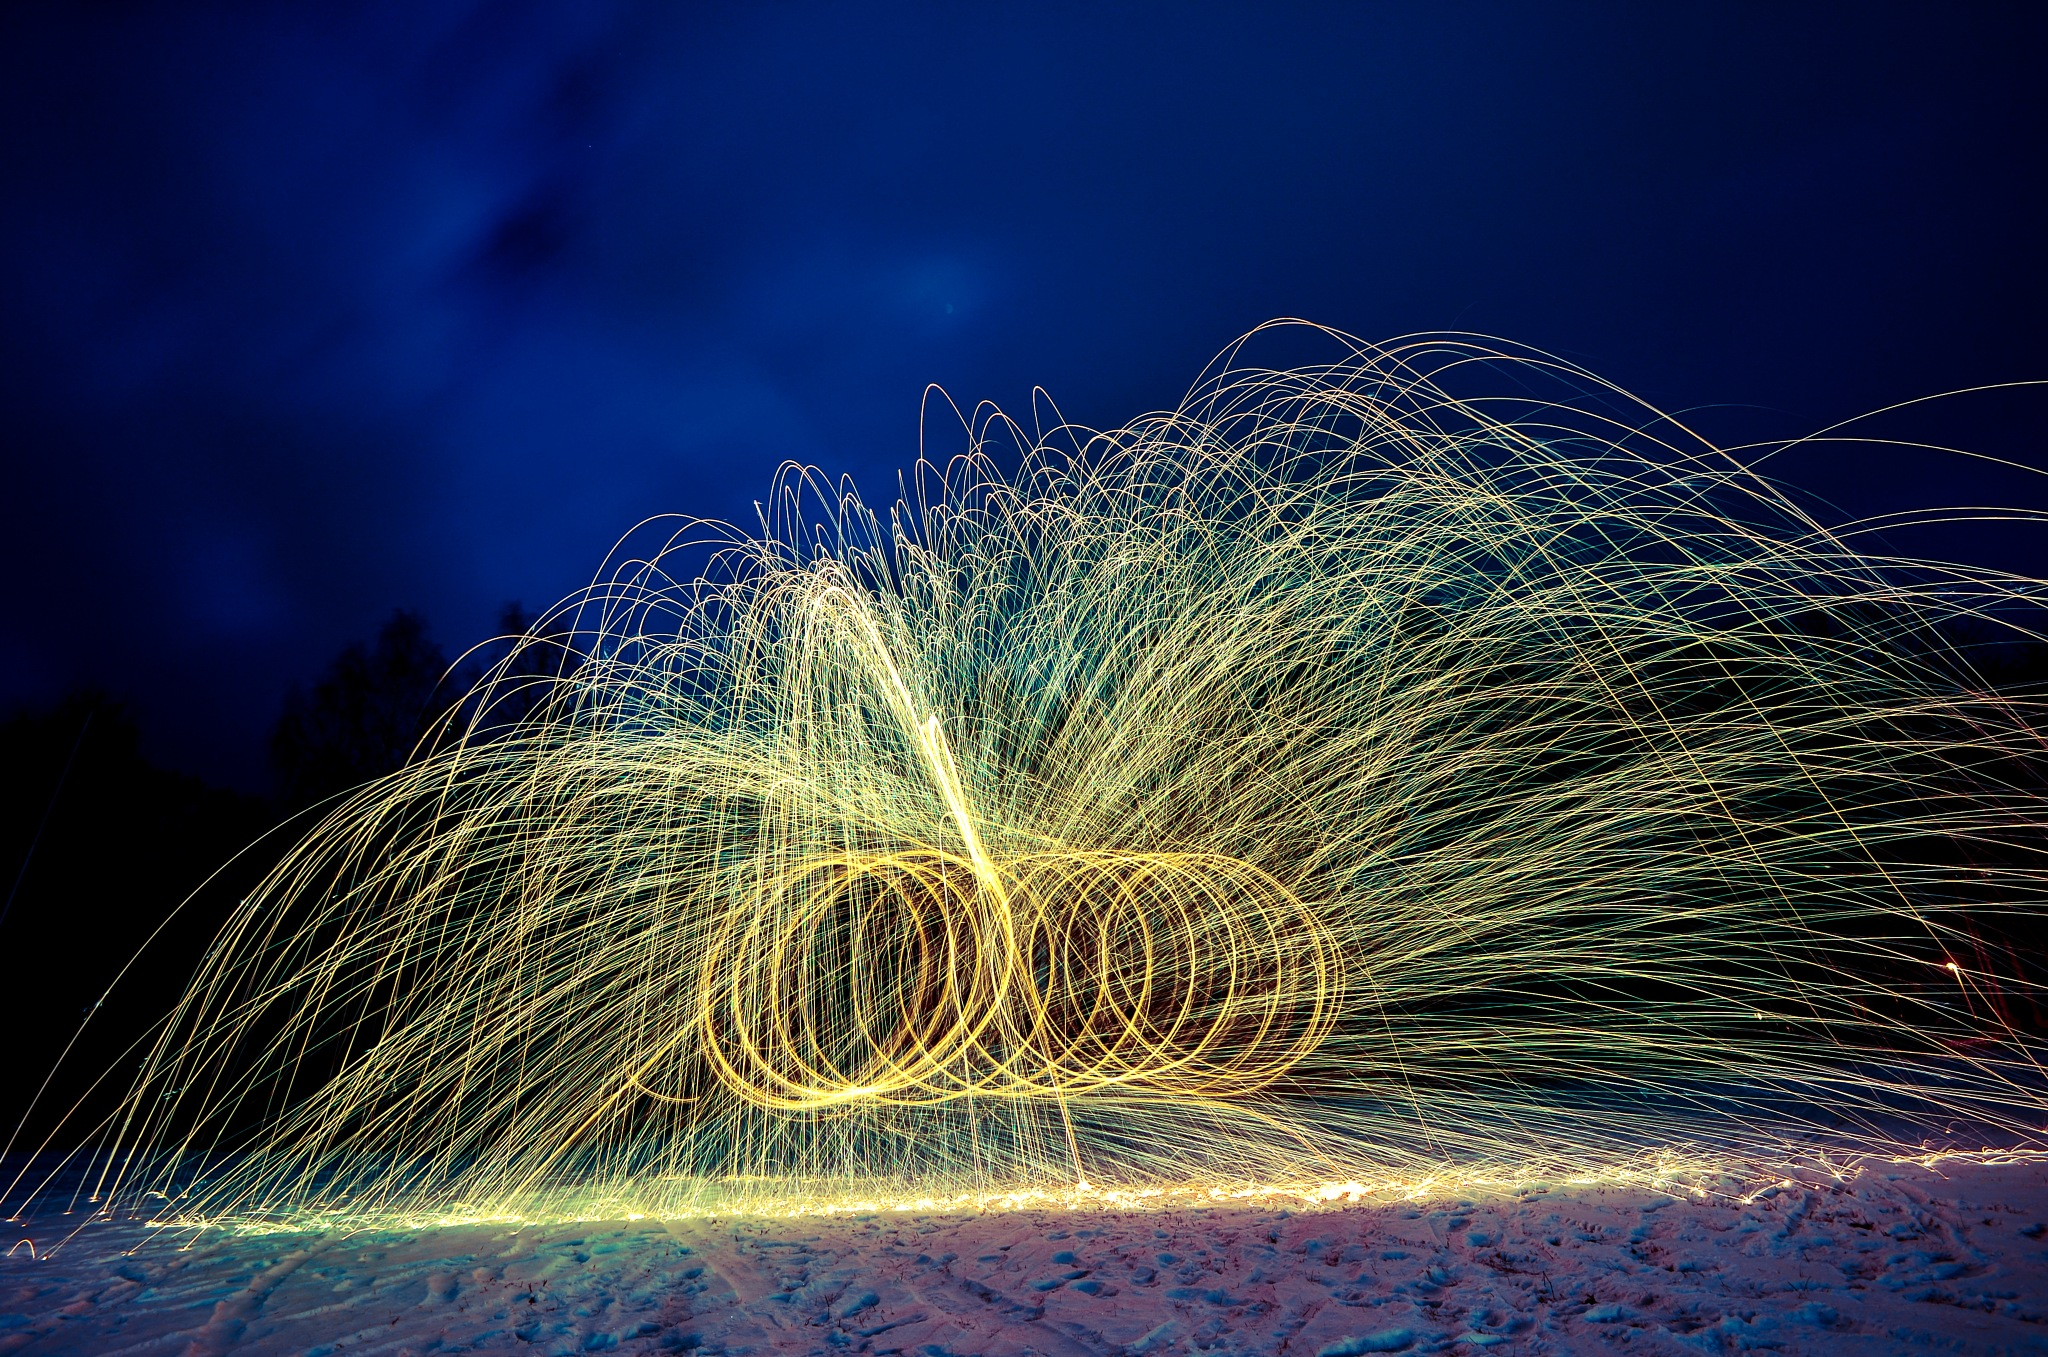 Playing with steel wool 2 by rollepersson